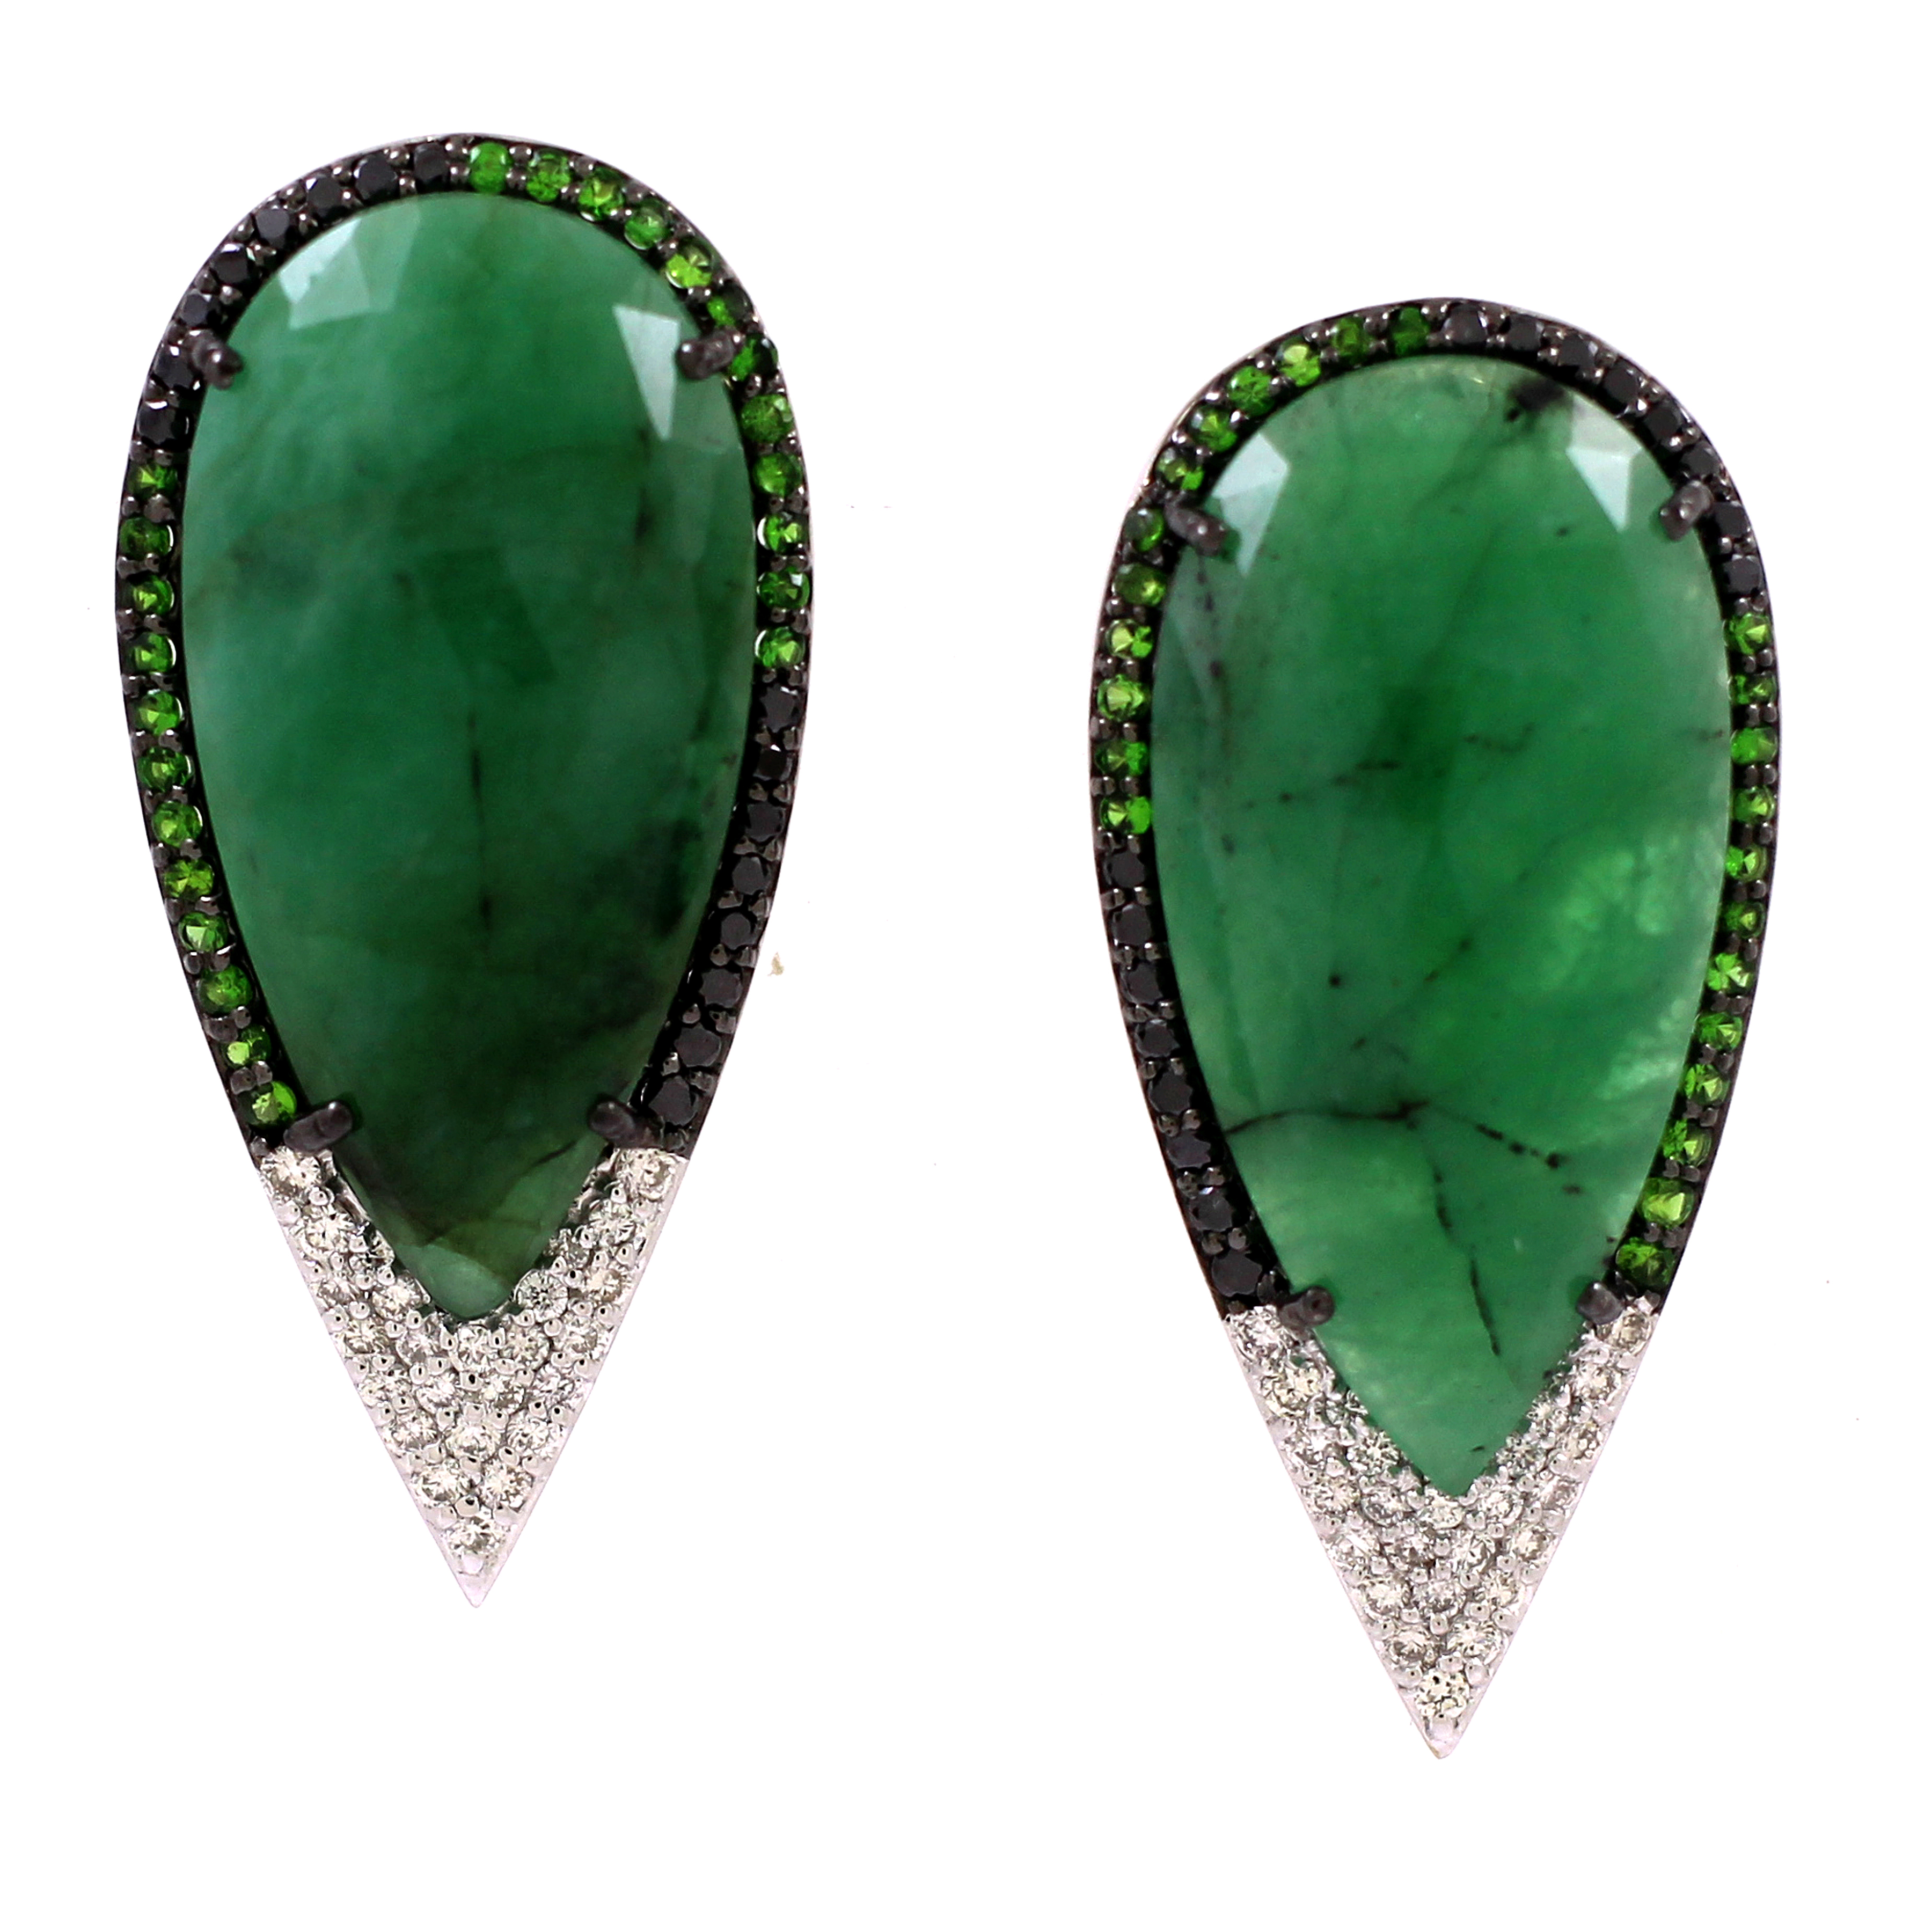 Vivaan emerald earrings | JCK On Your Market